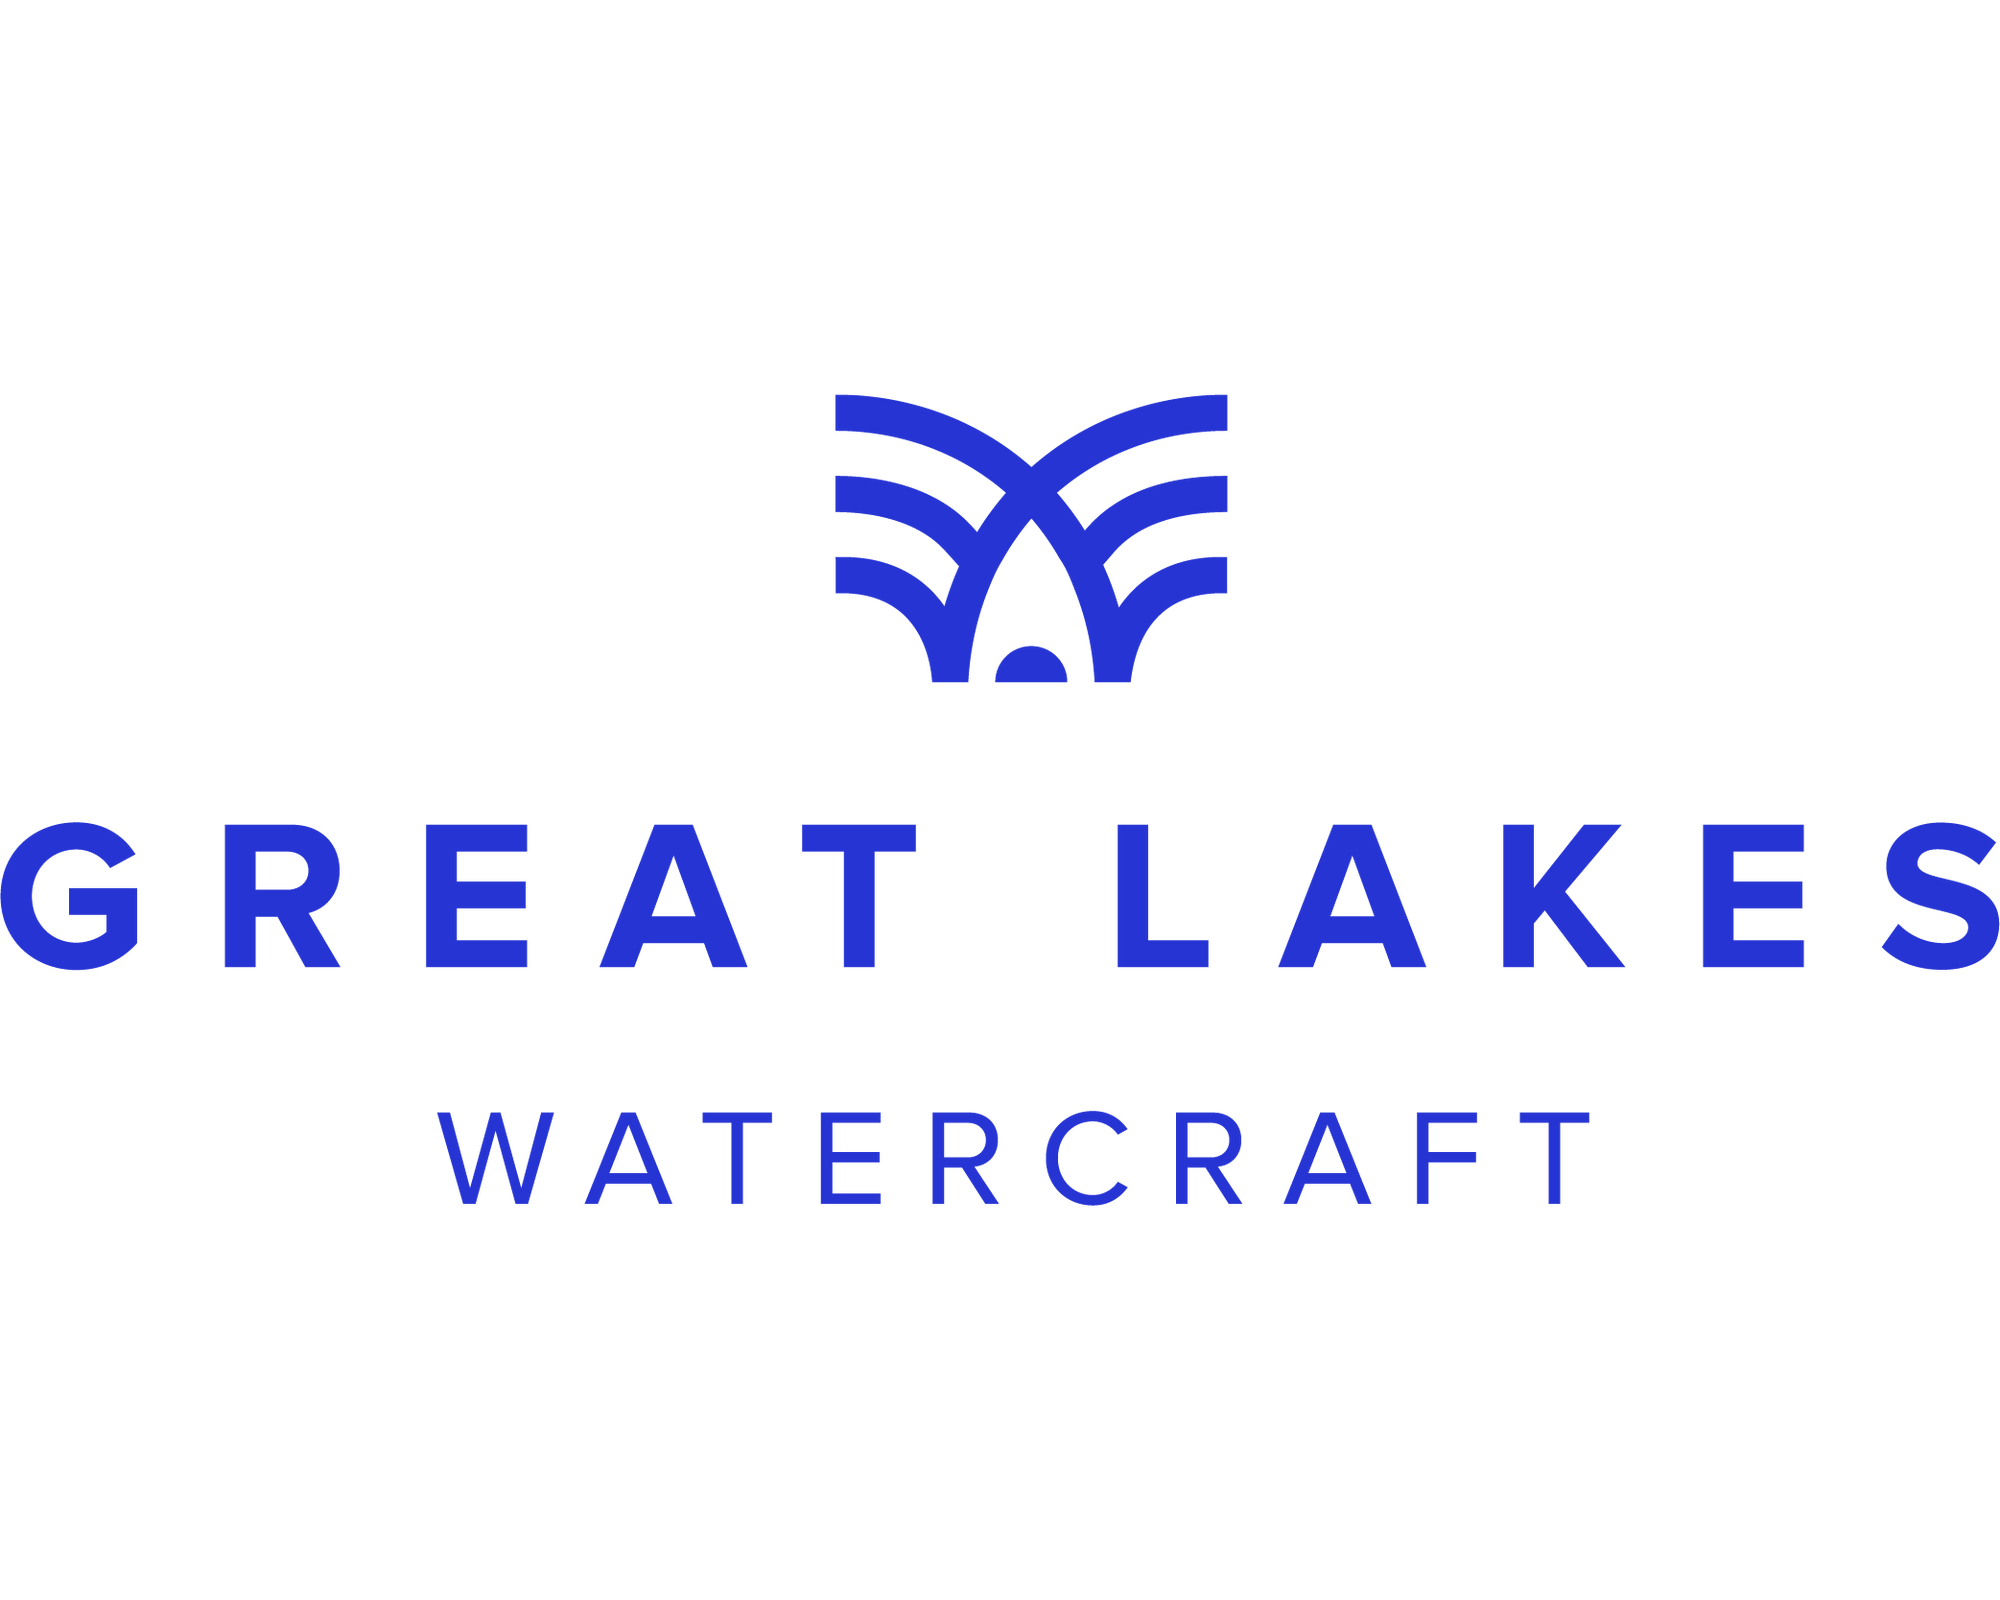 Great Lakes Watercraft